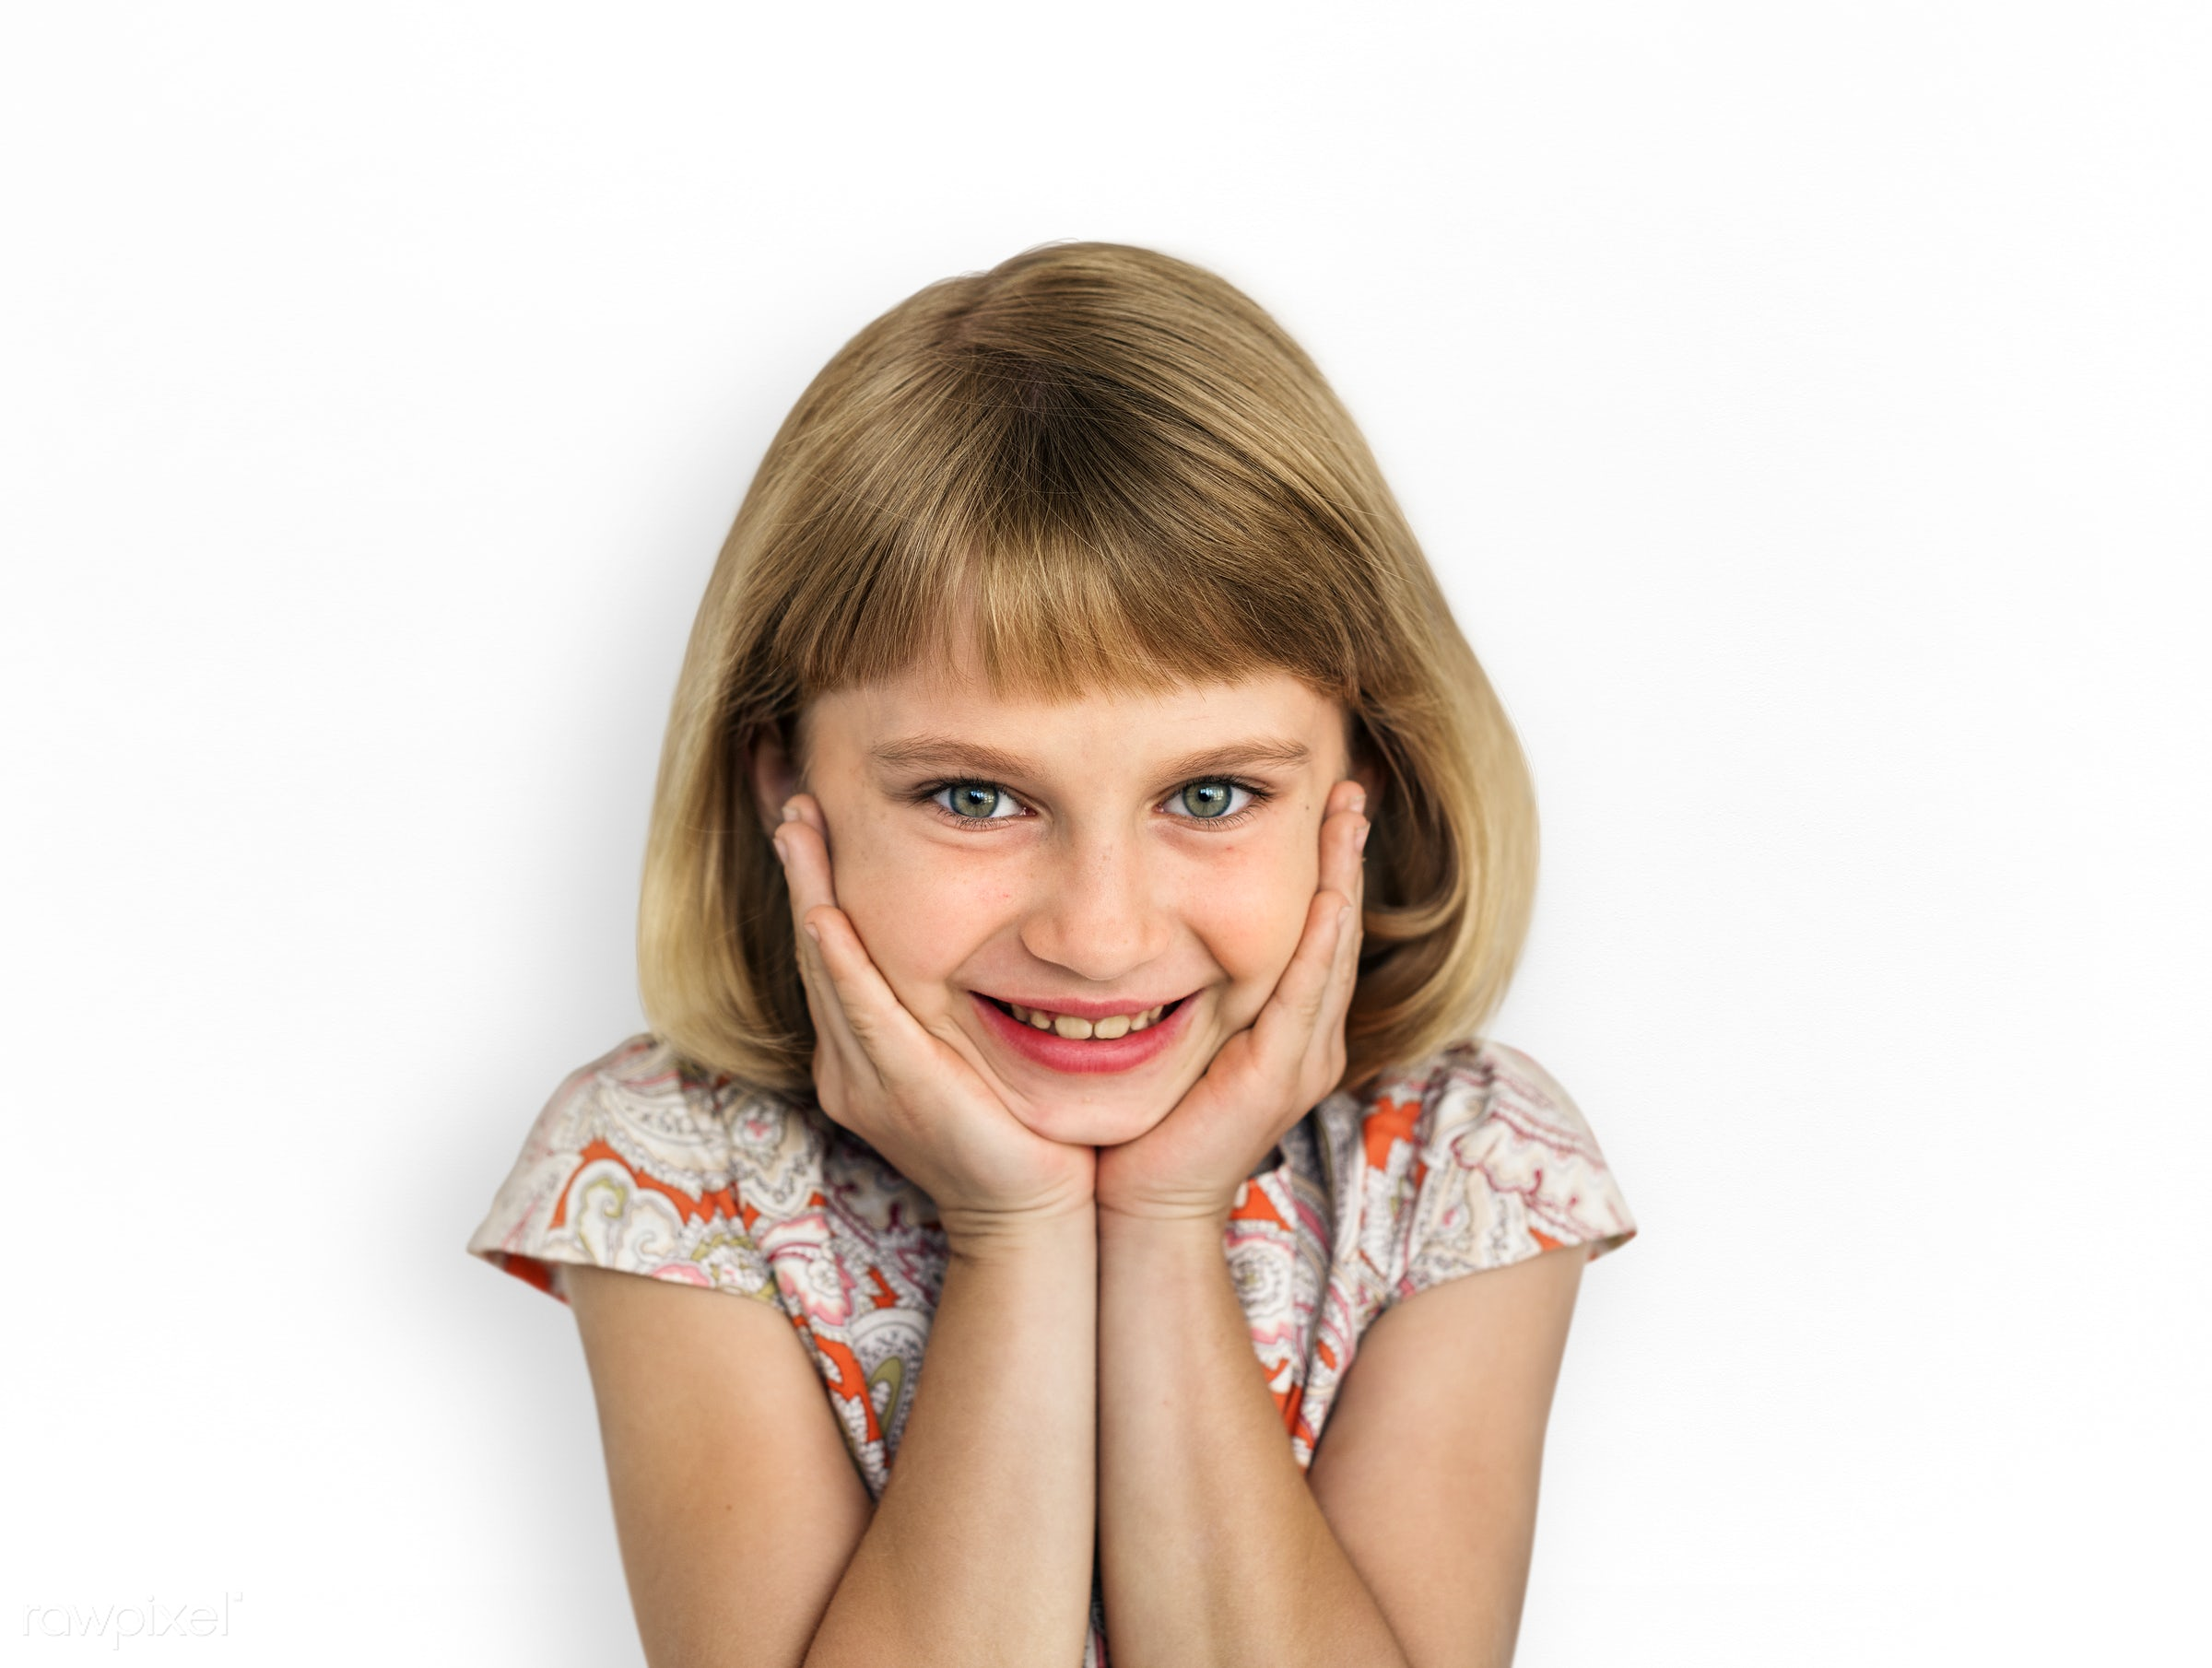 person, adorable, ages, background, caucasian, cheerful, child, childhood, children, cute, emotion, expression, female, fun...